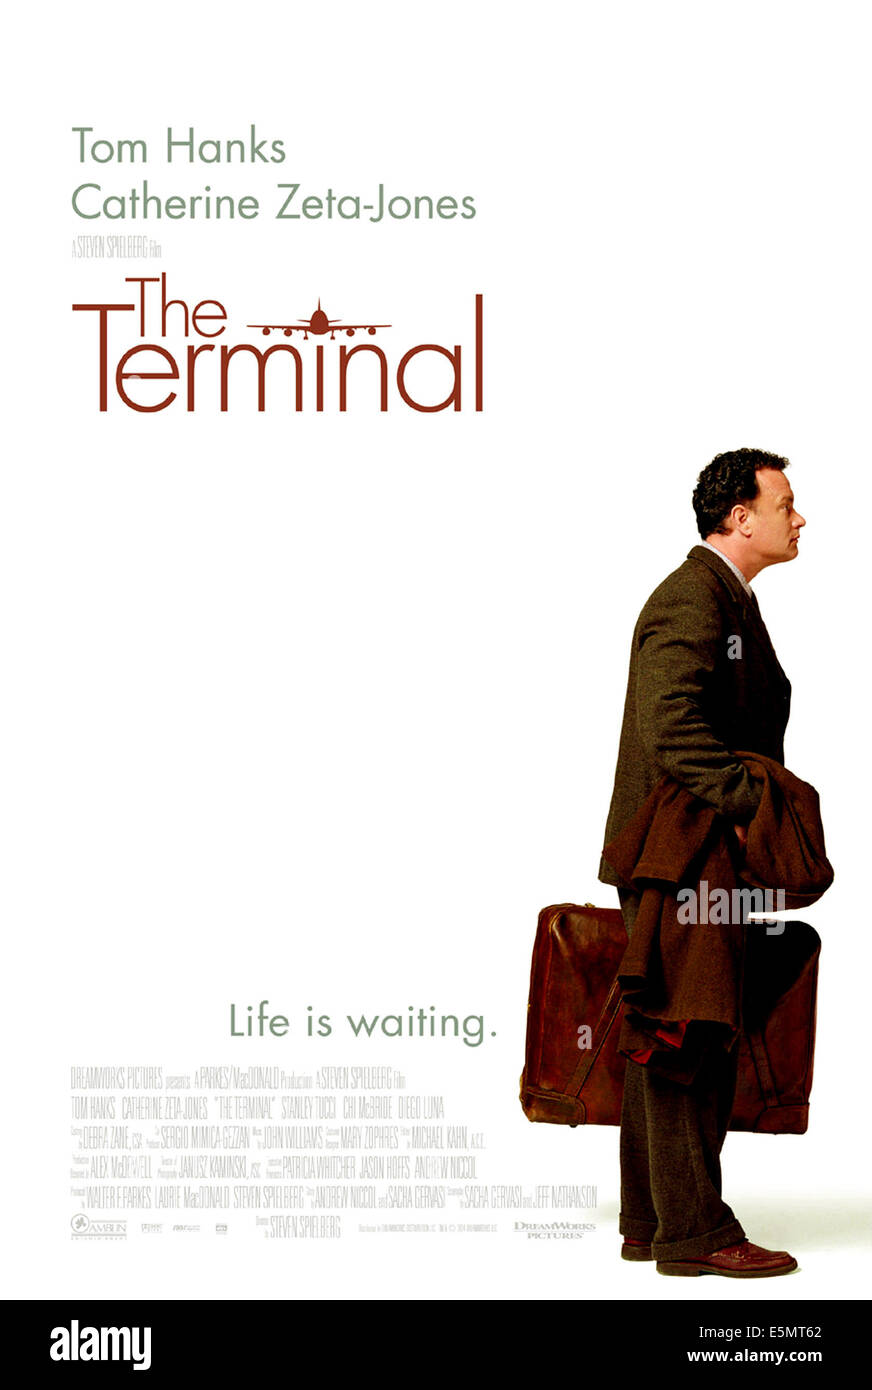 THE TERMINAL, Tom Hanks, 2004, (c) DreamWorks/courtesy Everett Collection - Stock Image